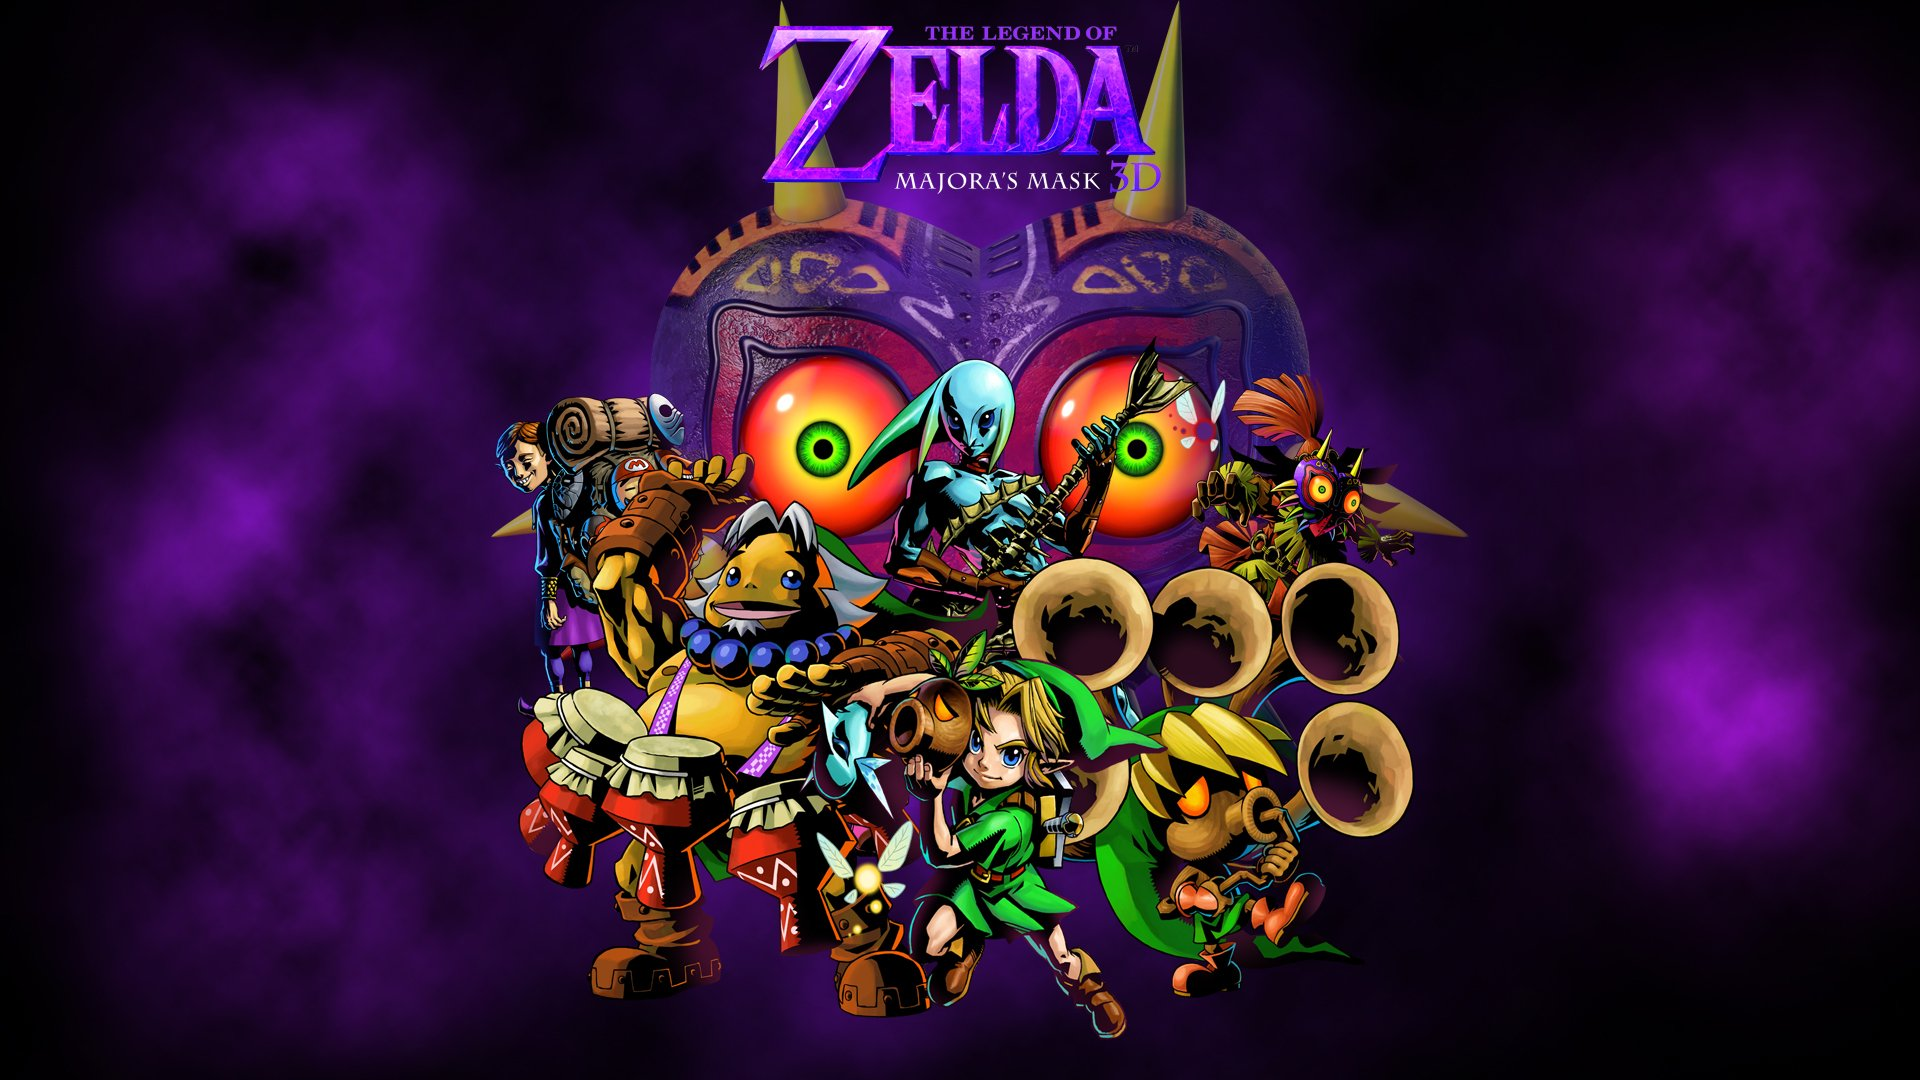 The Legend Of Zelda: Majora's Mask HD Wallpapers and Backgrounds